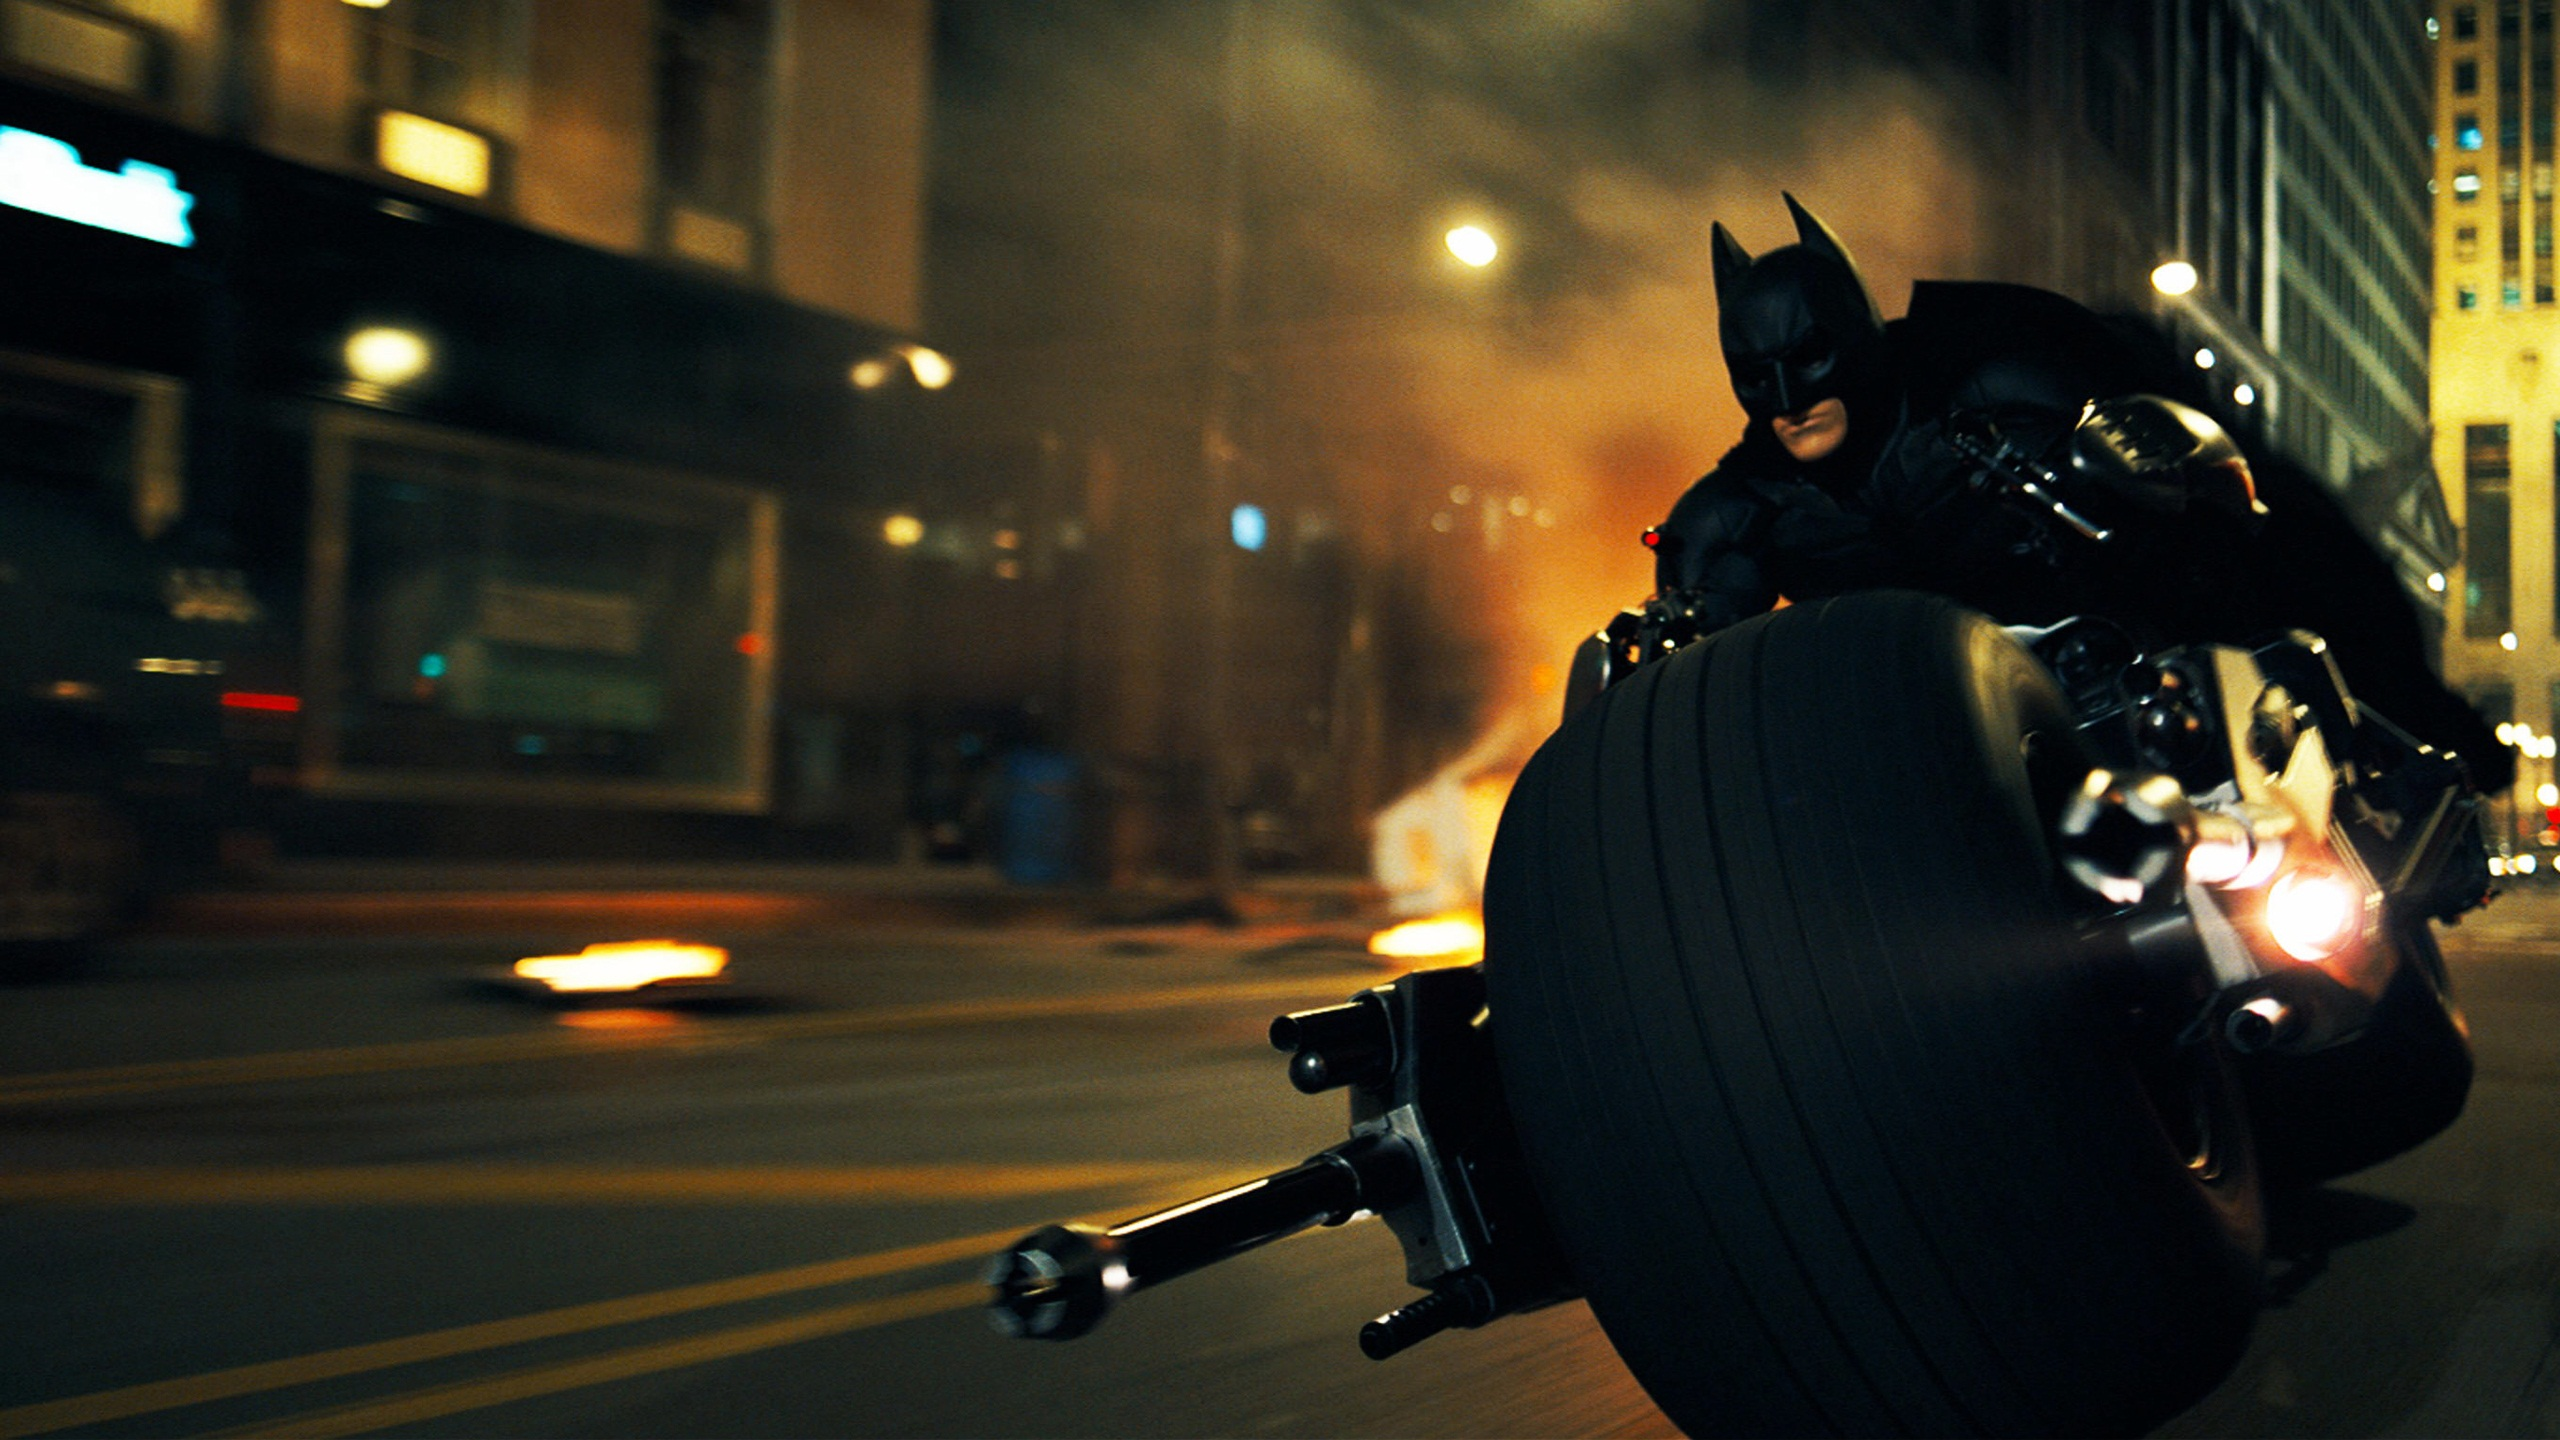 Batman in Dark Knight Rises 689.69 Kb